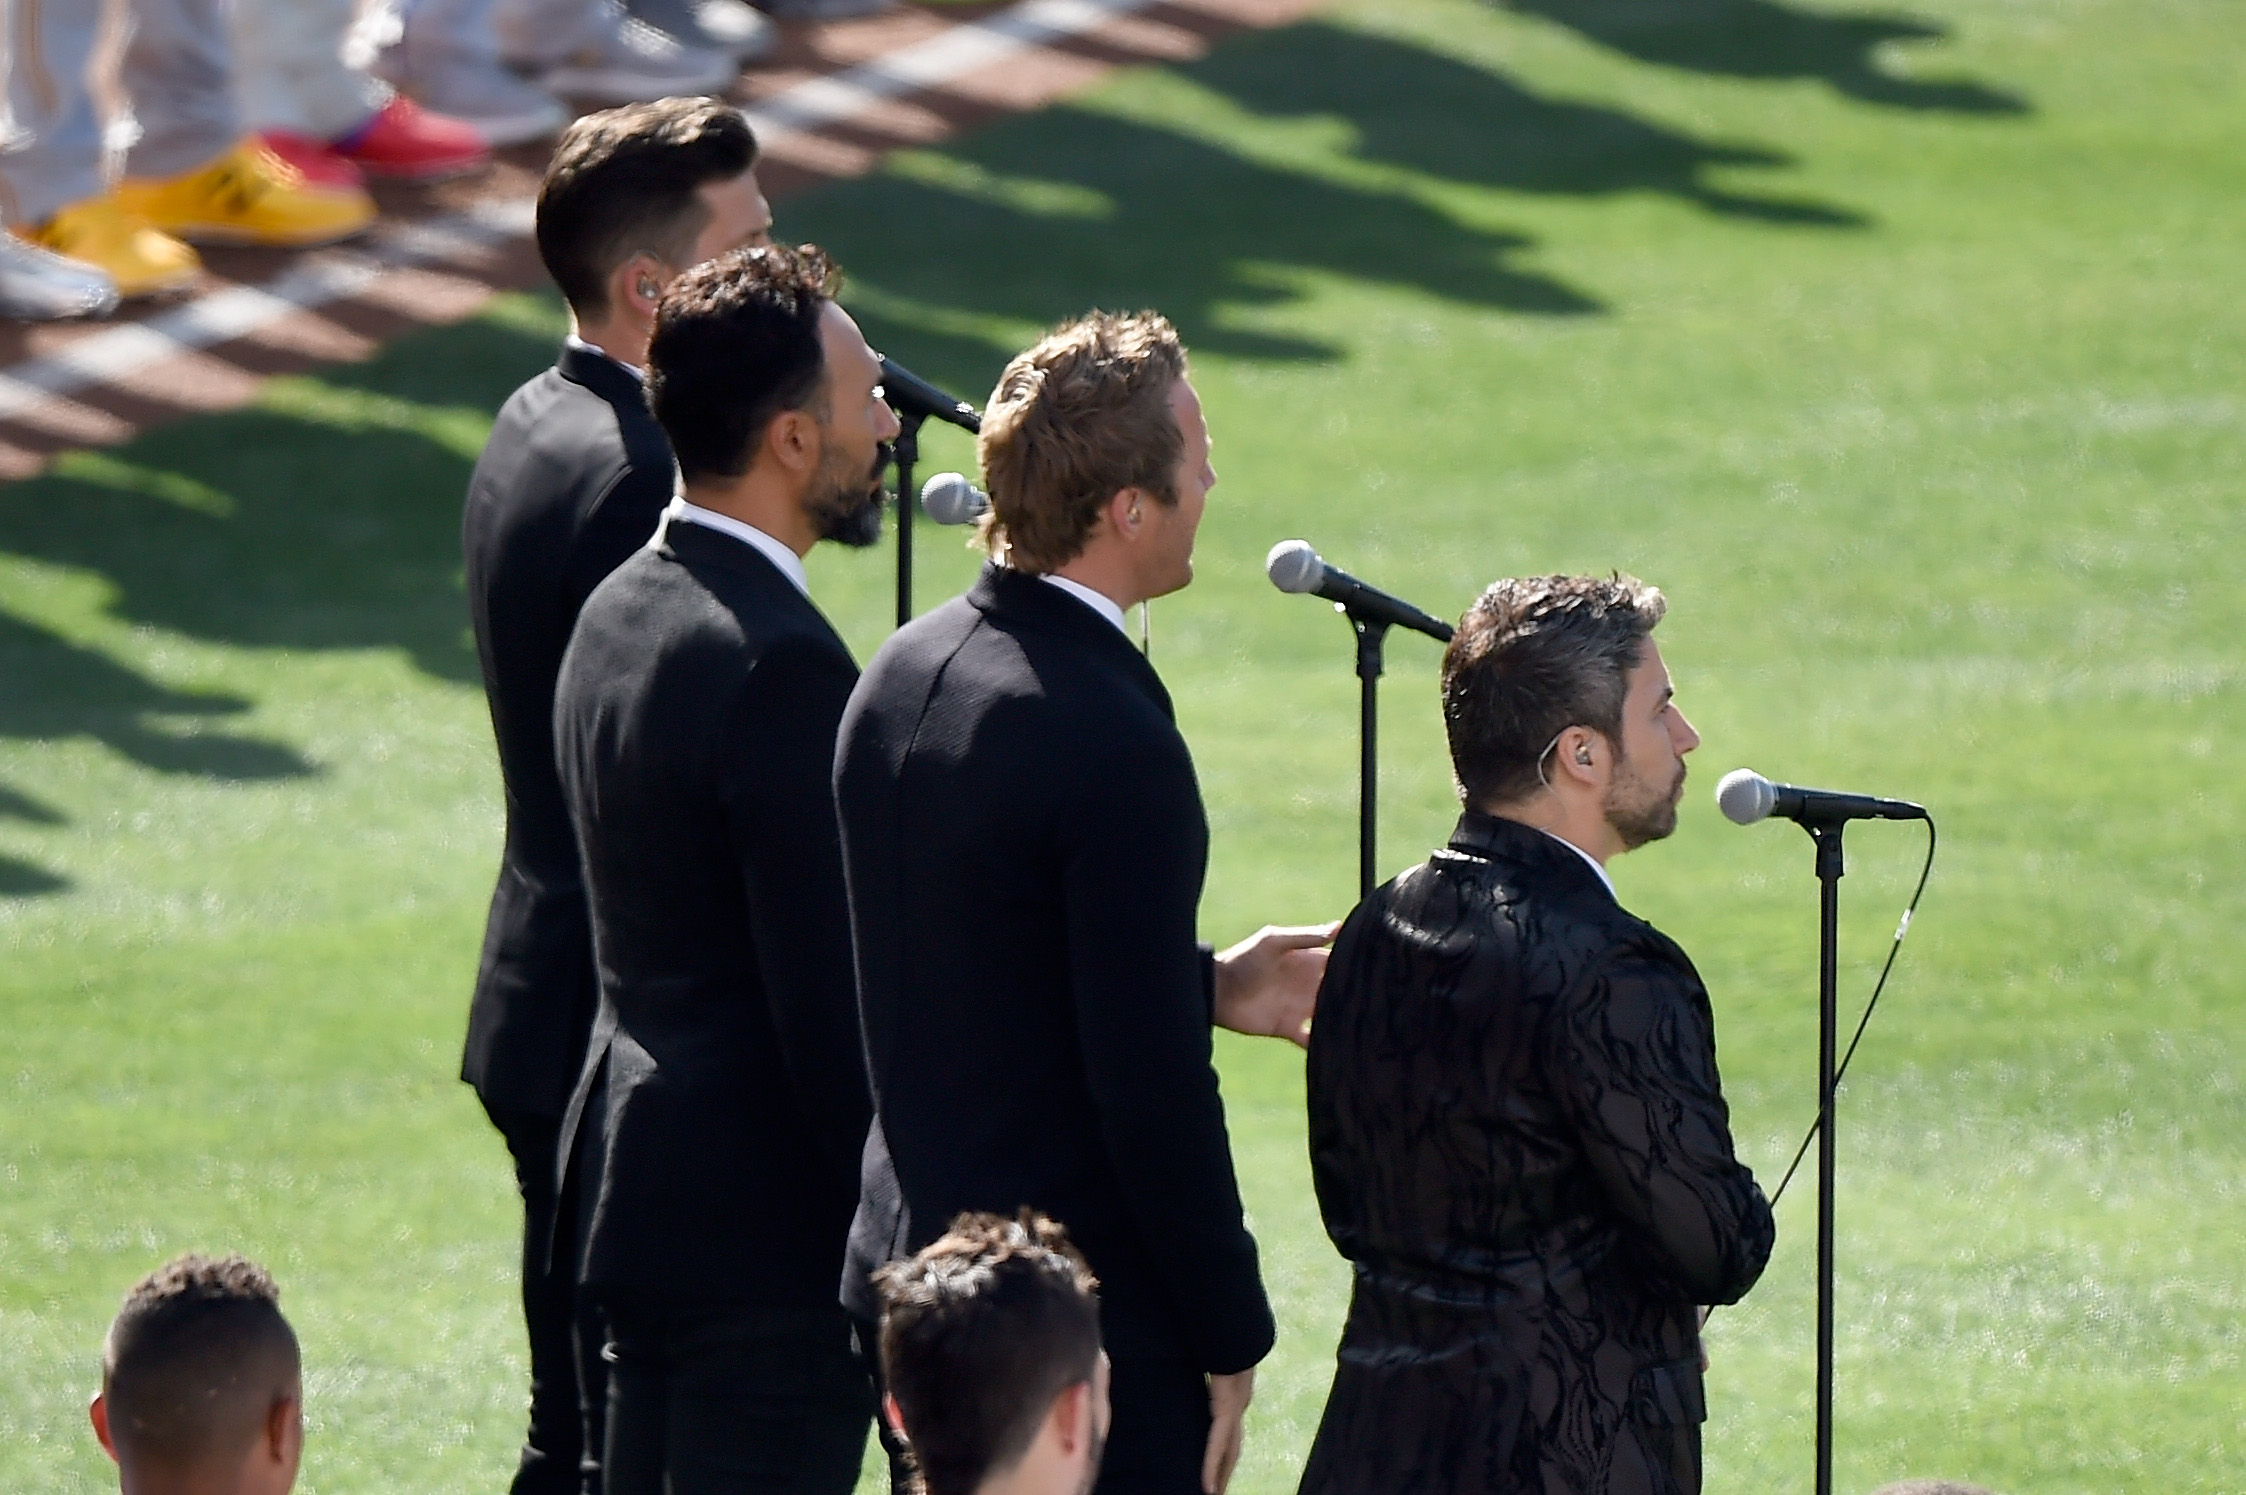 The Tenors, musicians based in British Columbia, perform  O Canada,  prior to the 87th Annual MLB All-Star Game at PETCO Park on July 12, 2016, in San Diego